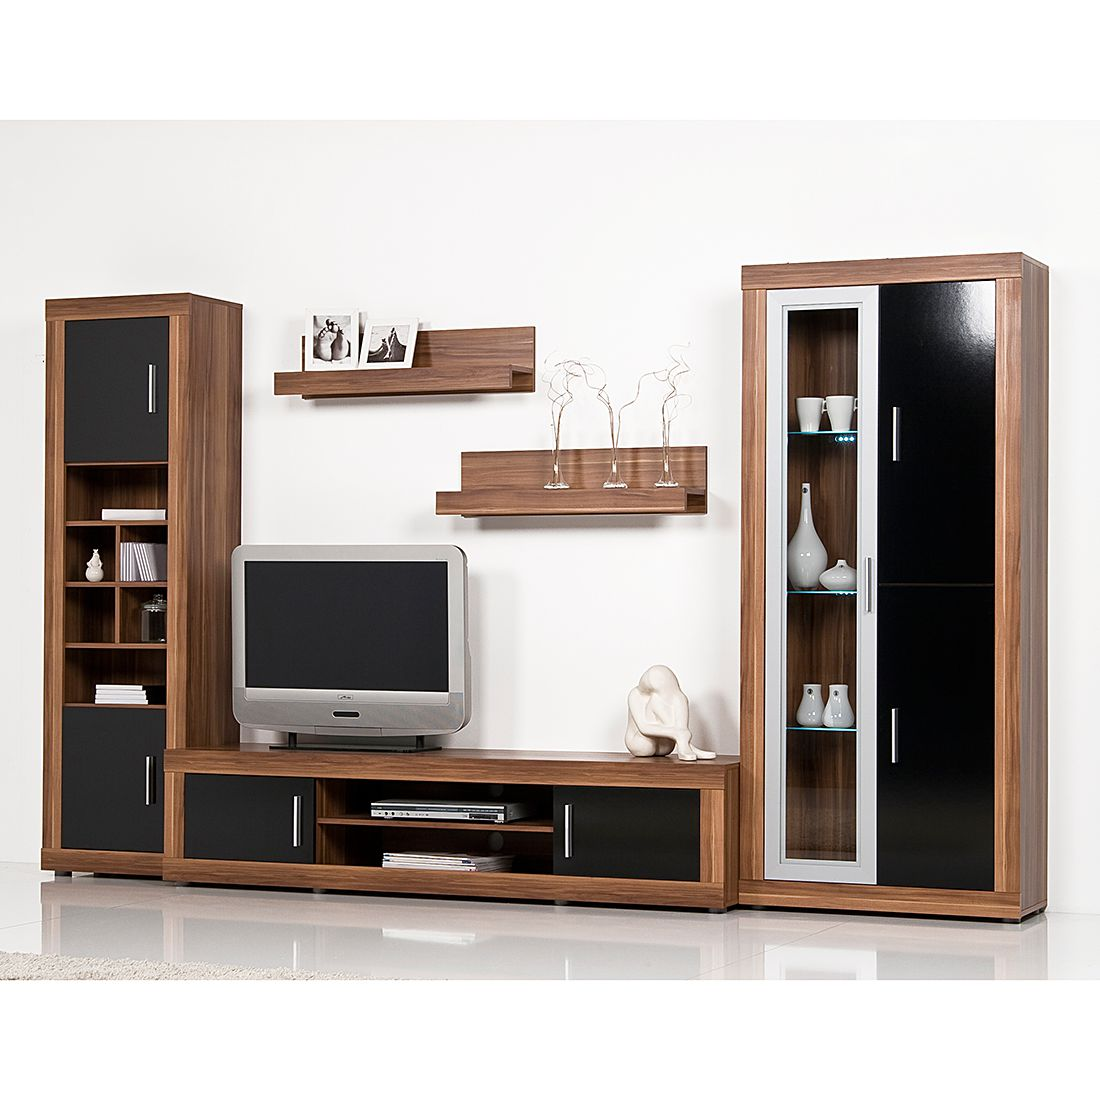 preisvergleich eu wohnwand nussbaum. Black Bedroom Furniture Sets. Home Design Ideas